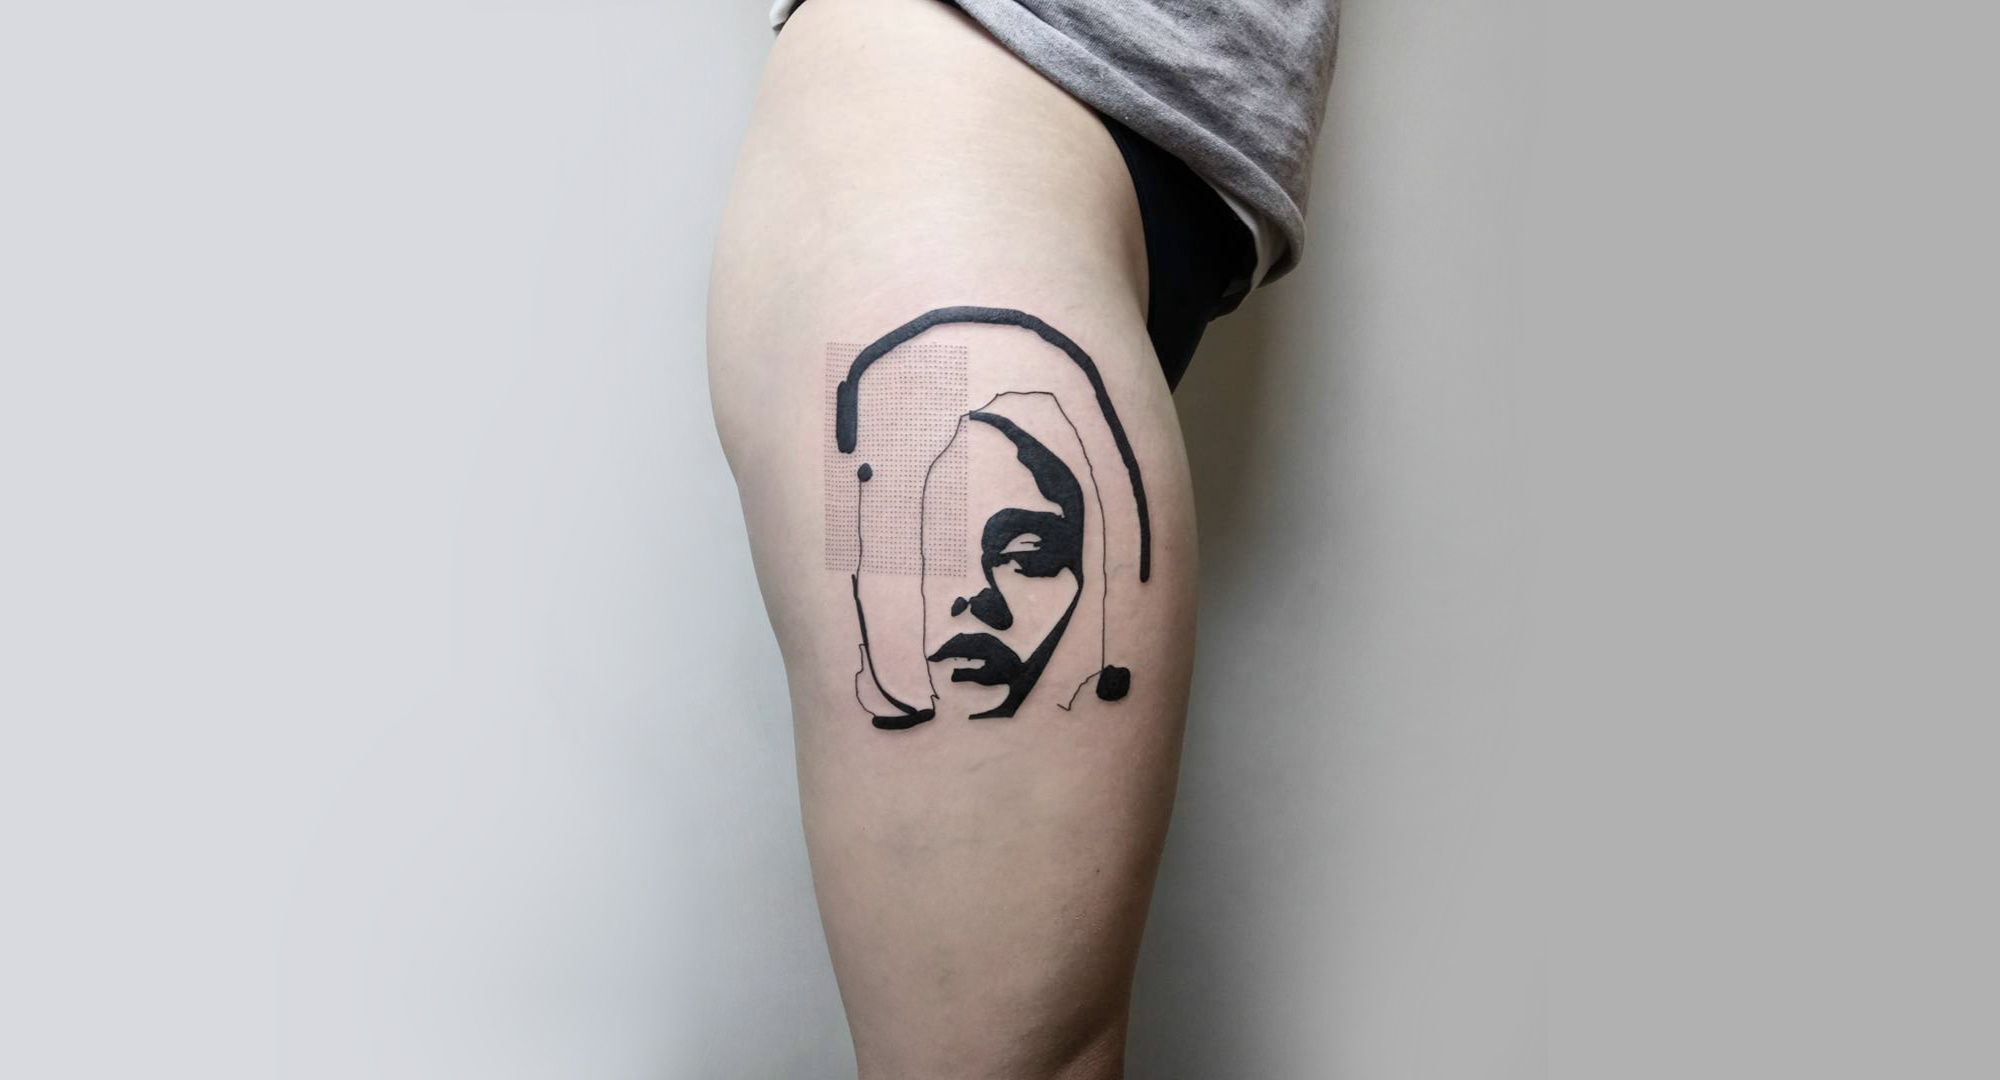 Smokey pop portrait tattoo by Andrey Volkov